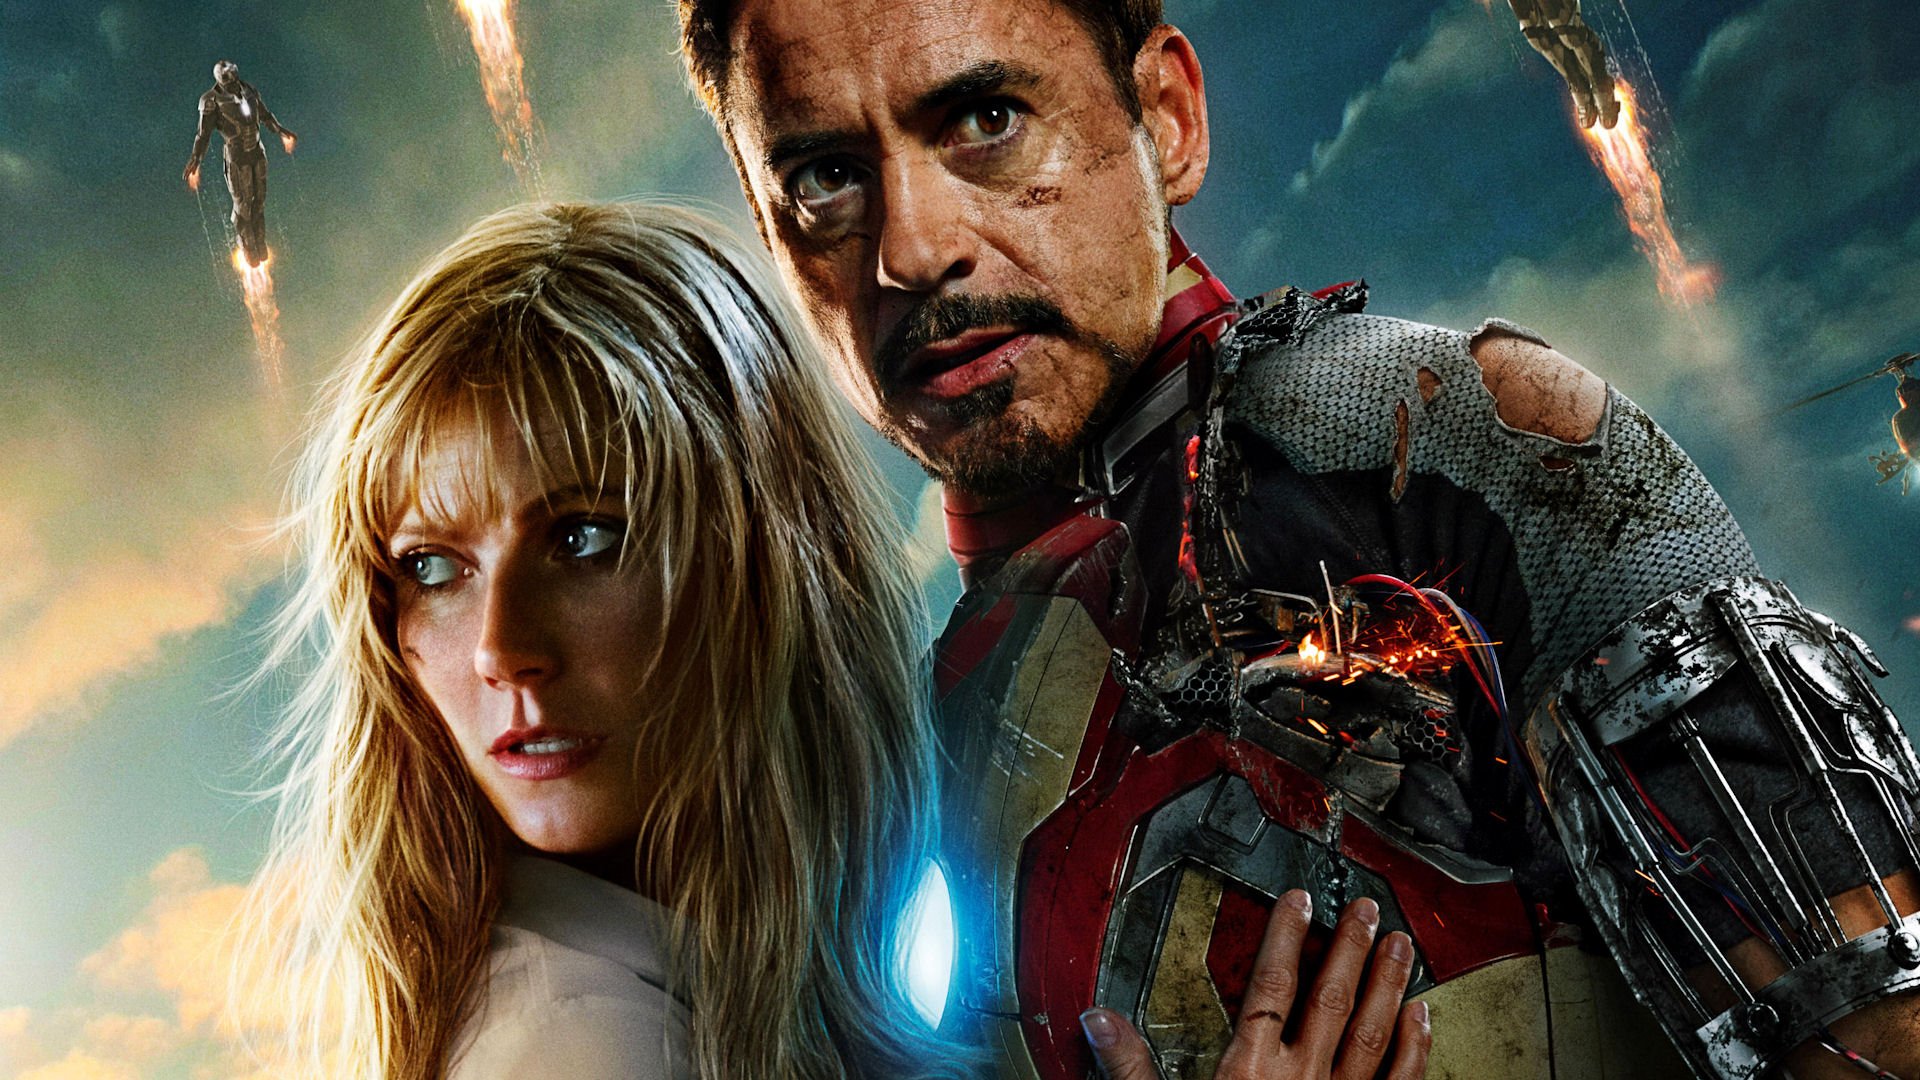 Iron Man 3 Wallpaper Hd Video Games Blogger